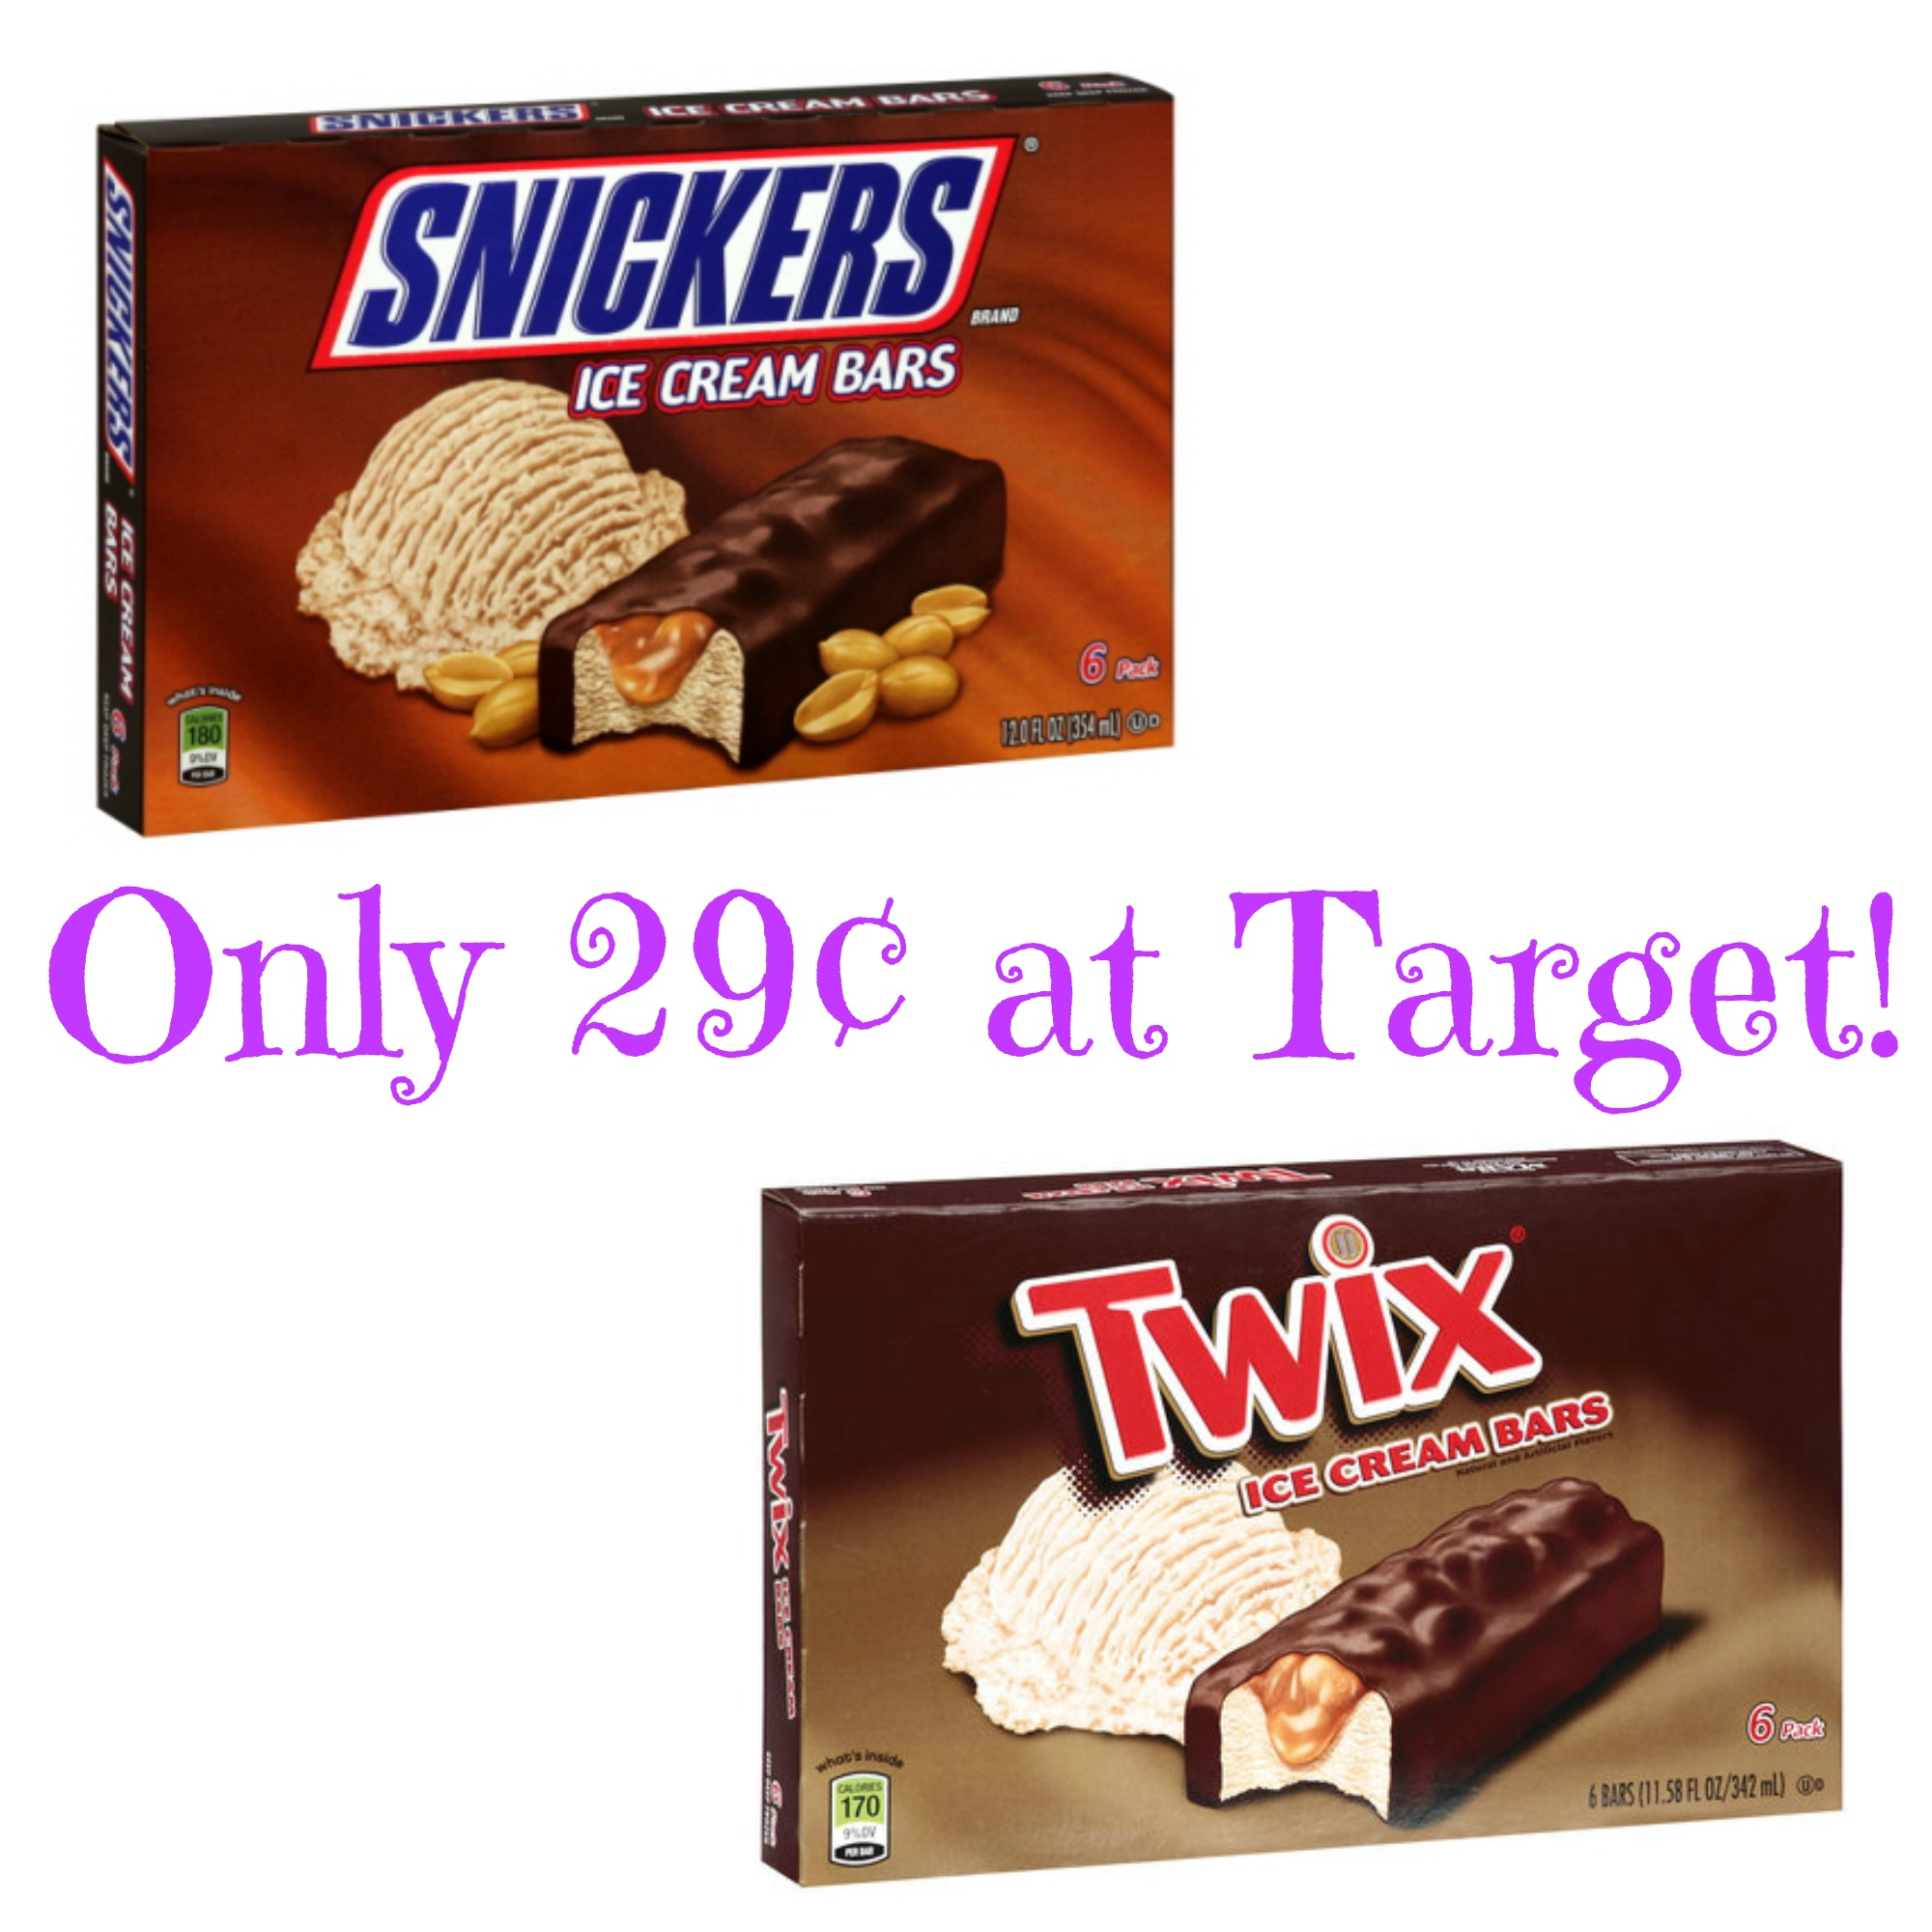 Snickers or Twix Ice Cream Bars Only 29¢ at Target! – Mojosavings.com